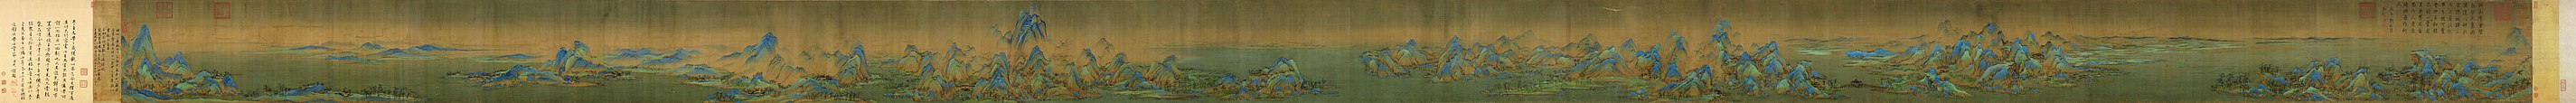 Wang Ximeng. A Thousand Li of Rivers and Mountains. (Complete, 51,3x1191,5 cm). 1113. Palace museum, Beijing.jpg